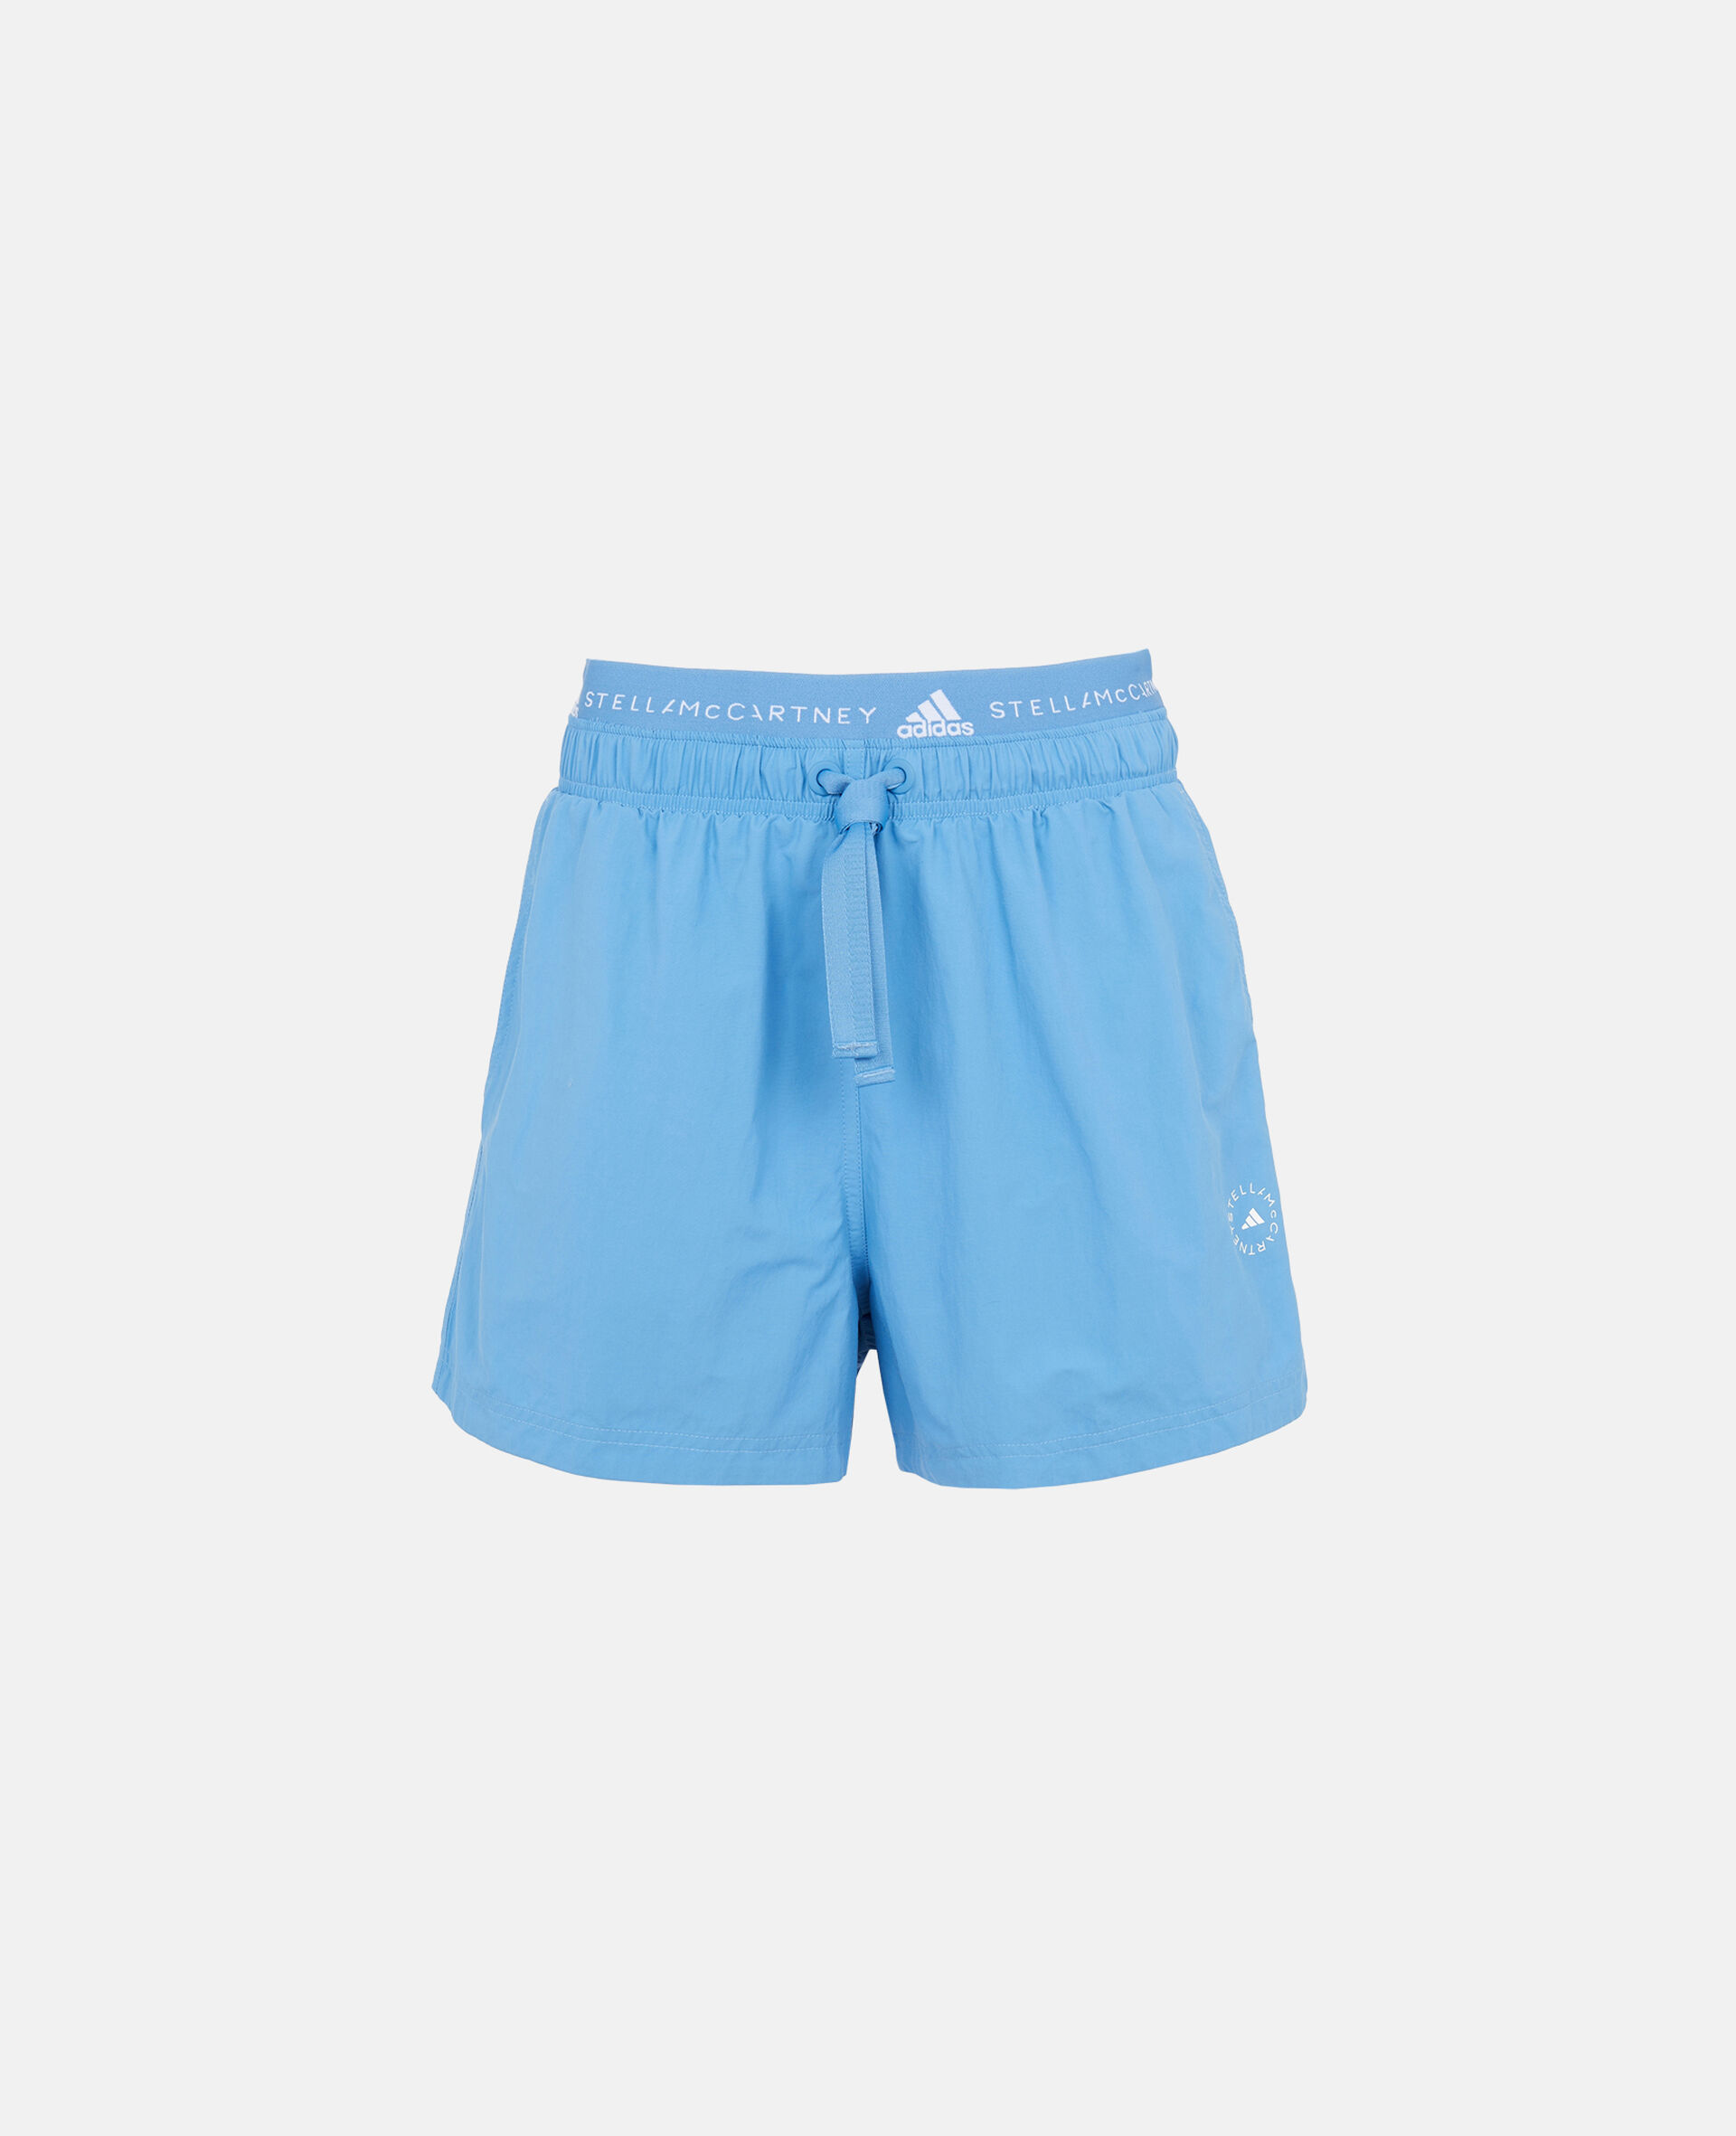 Blue Woven Shorts -Blue-large image number 0